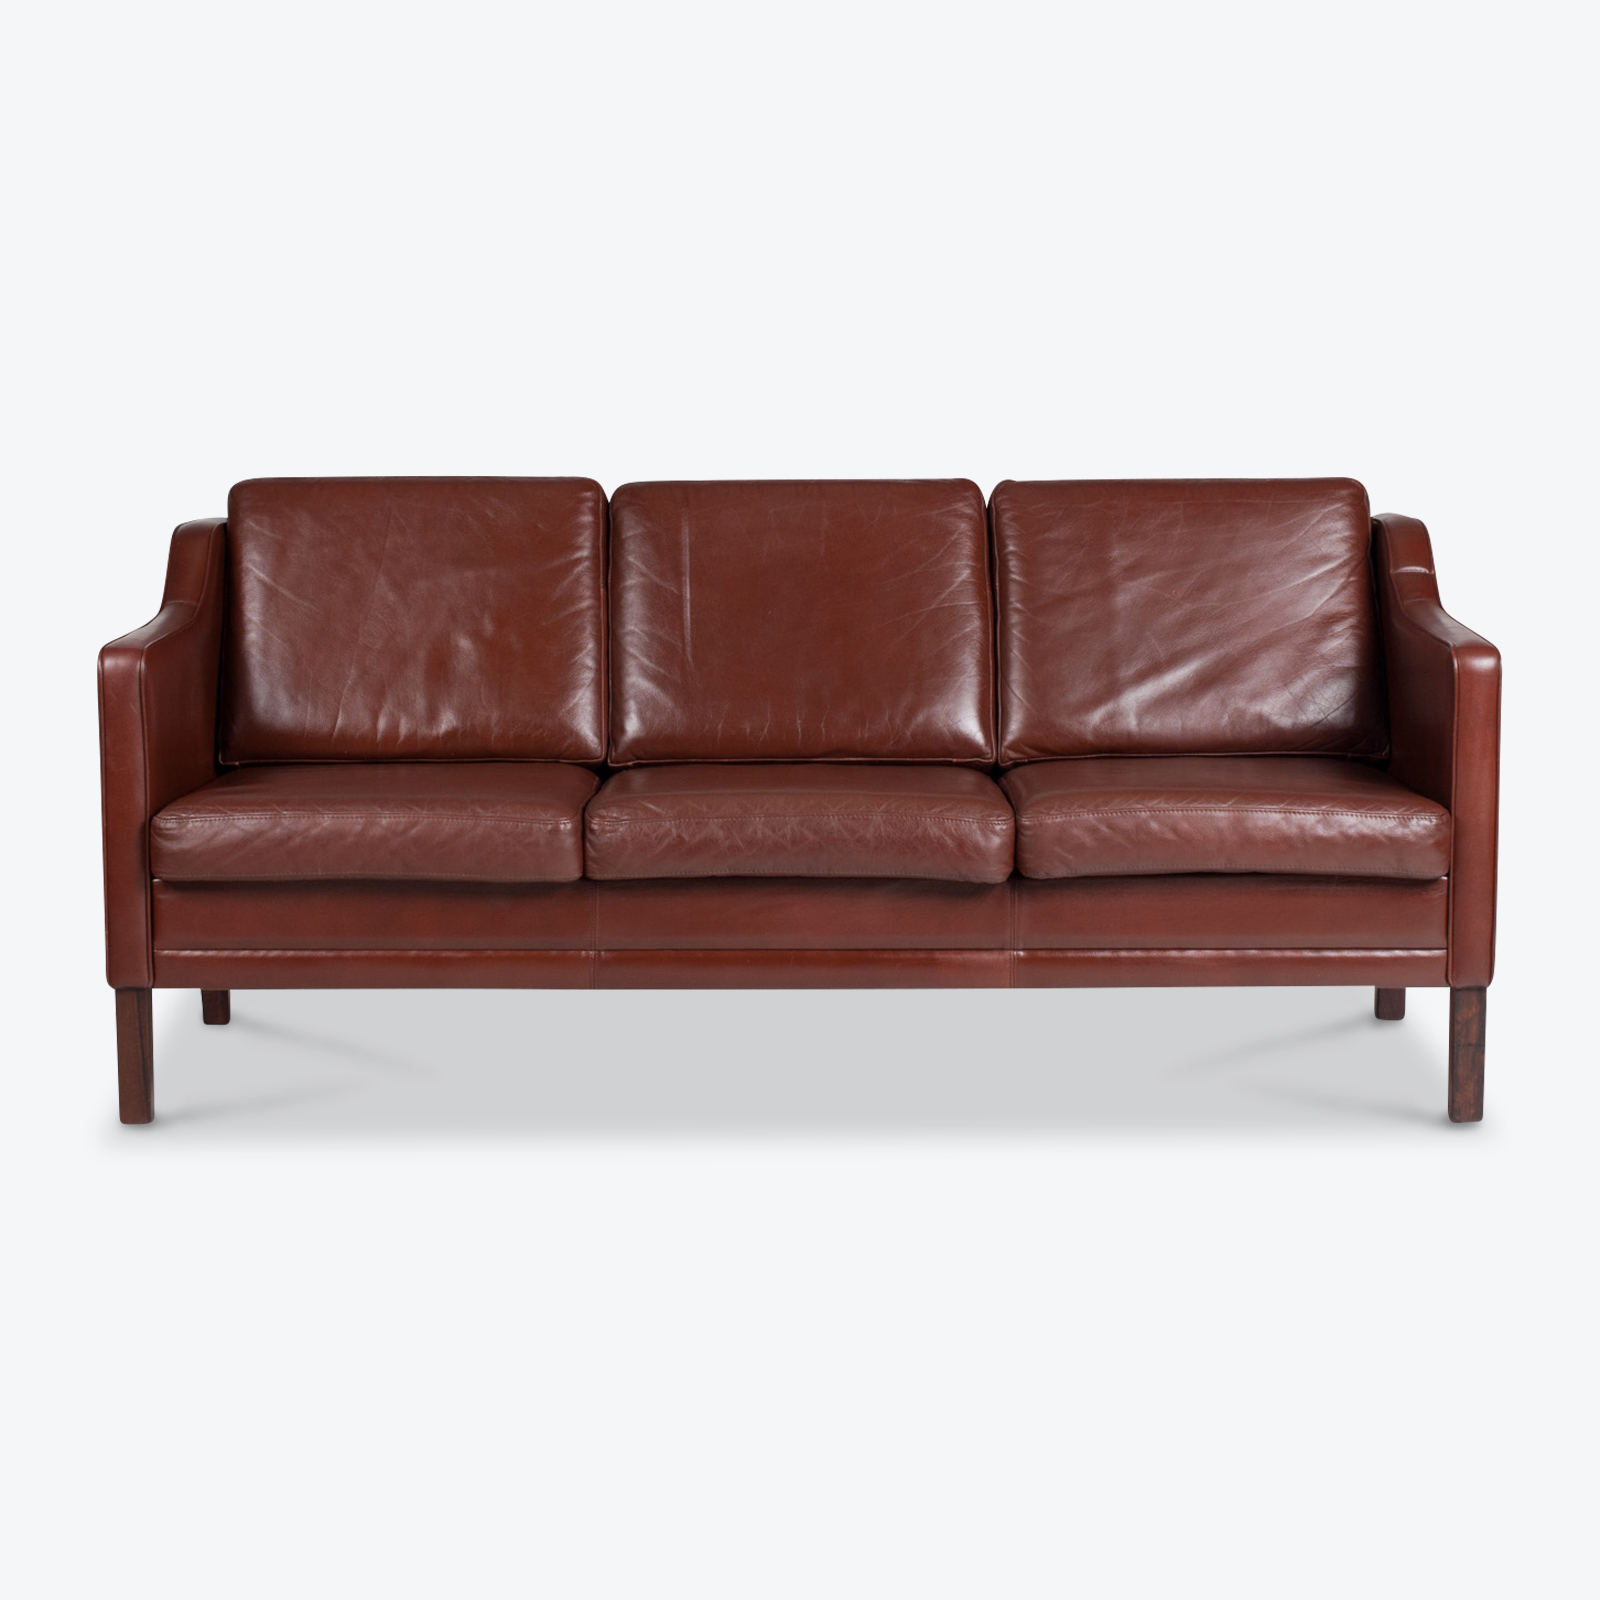 3 Seater Sofa In Tan Leather 1960s Denmark 01